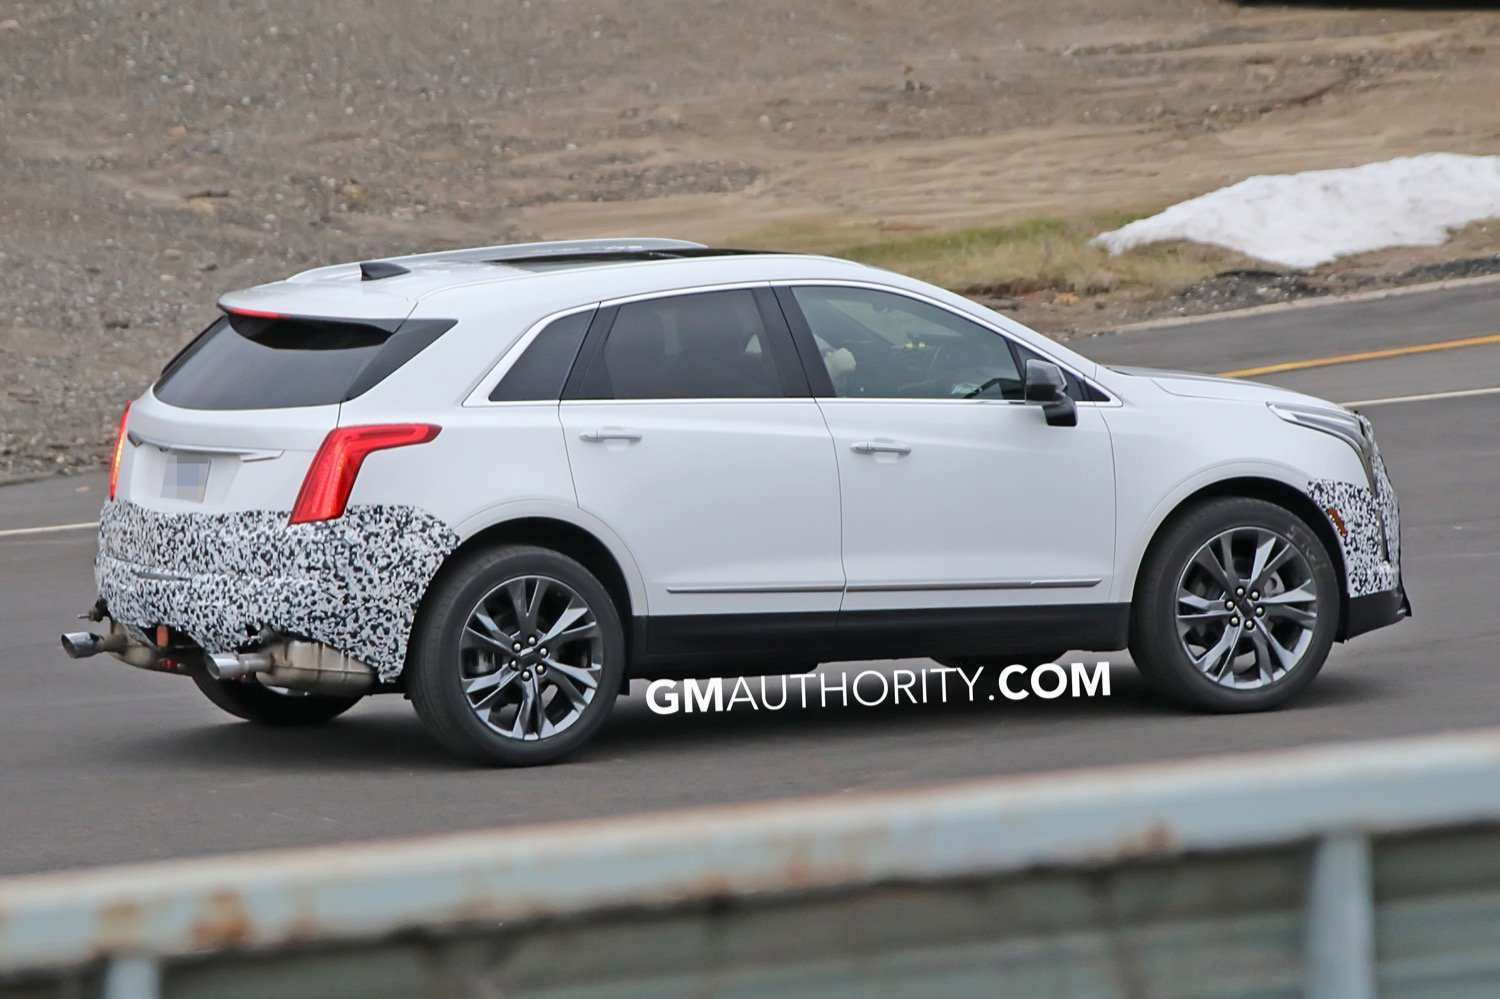 81 Concept of 2020 Spy Shots Cadillac Xt5 Wallpaper by 2020 Spy Shots Cadillac Xt5